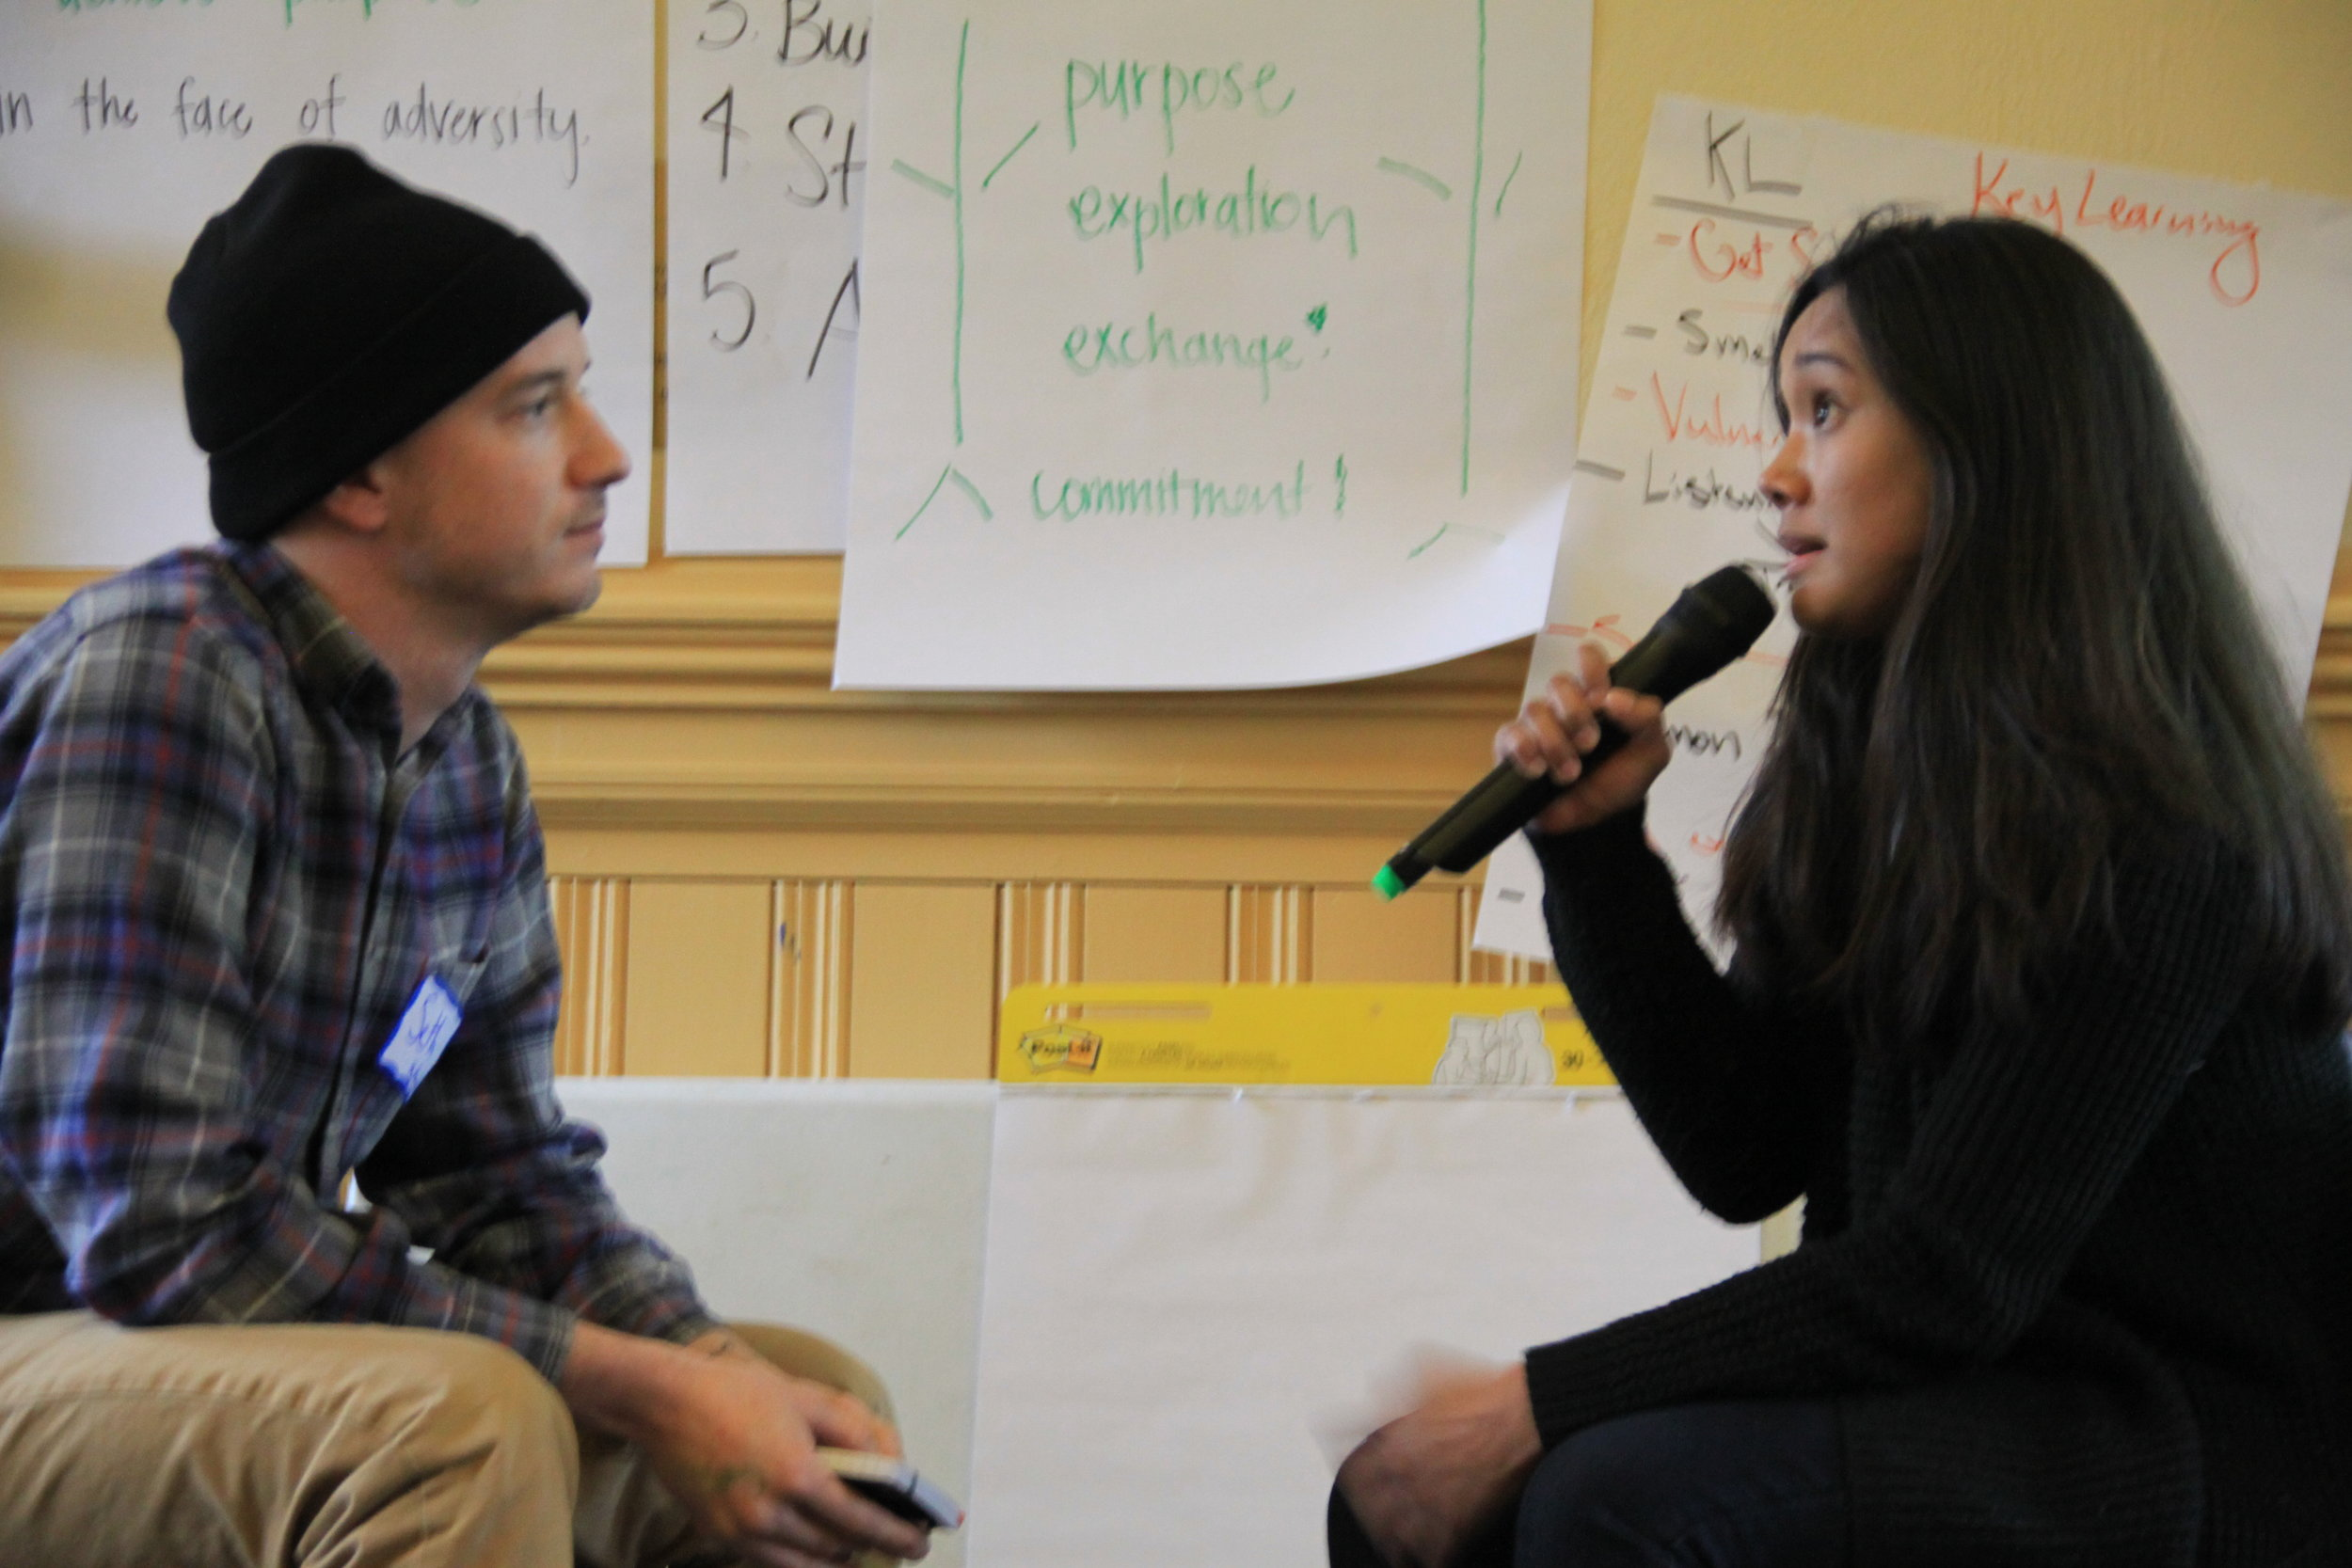 Seth and Alicia model a one-to-one during the module on relationships